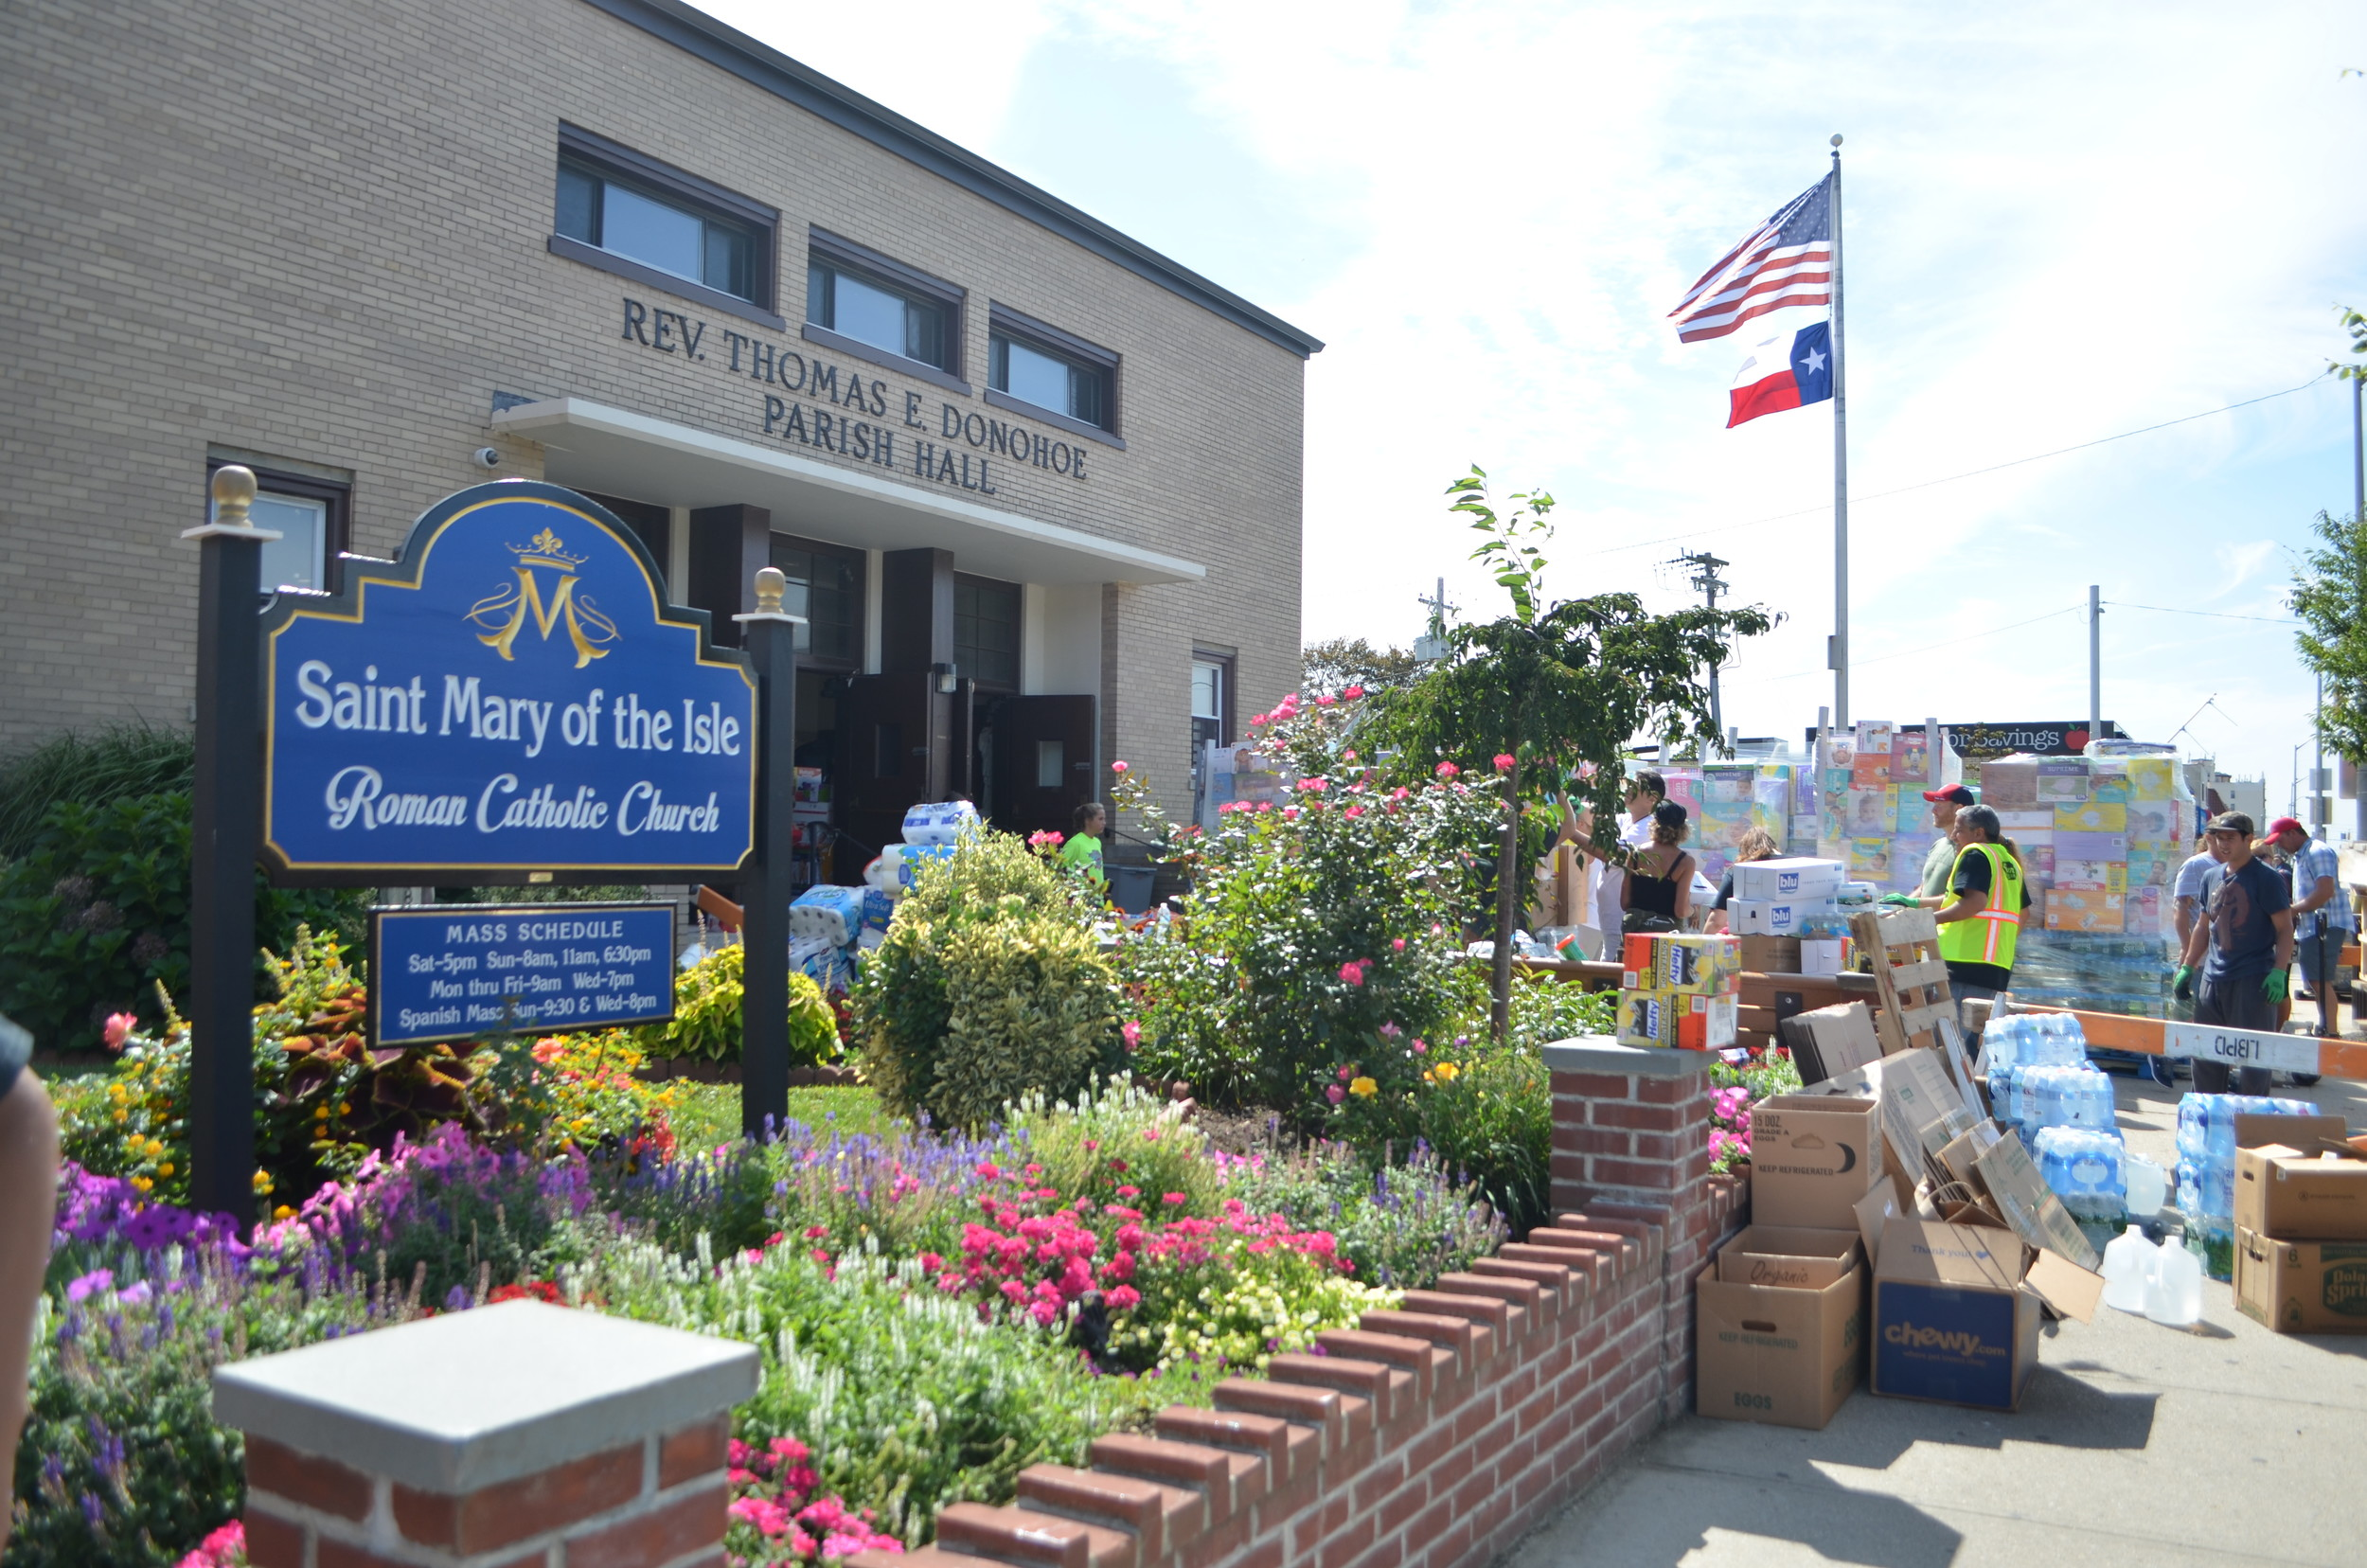 St. Mary of the Isle Roman Catholic Church has been home to a collection drive that would benefit the victims of Hurricane Harvey.